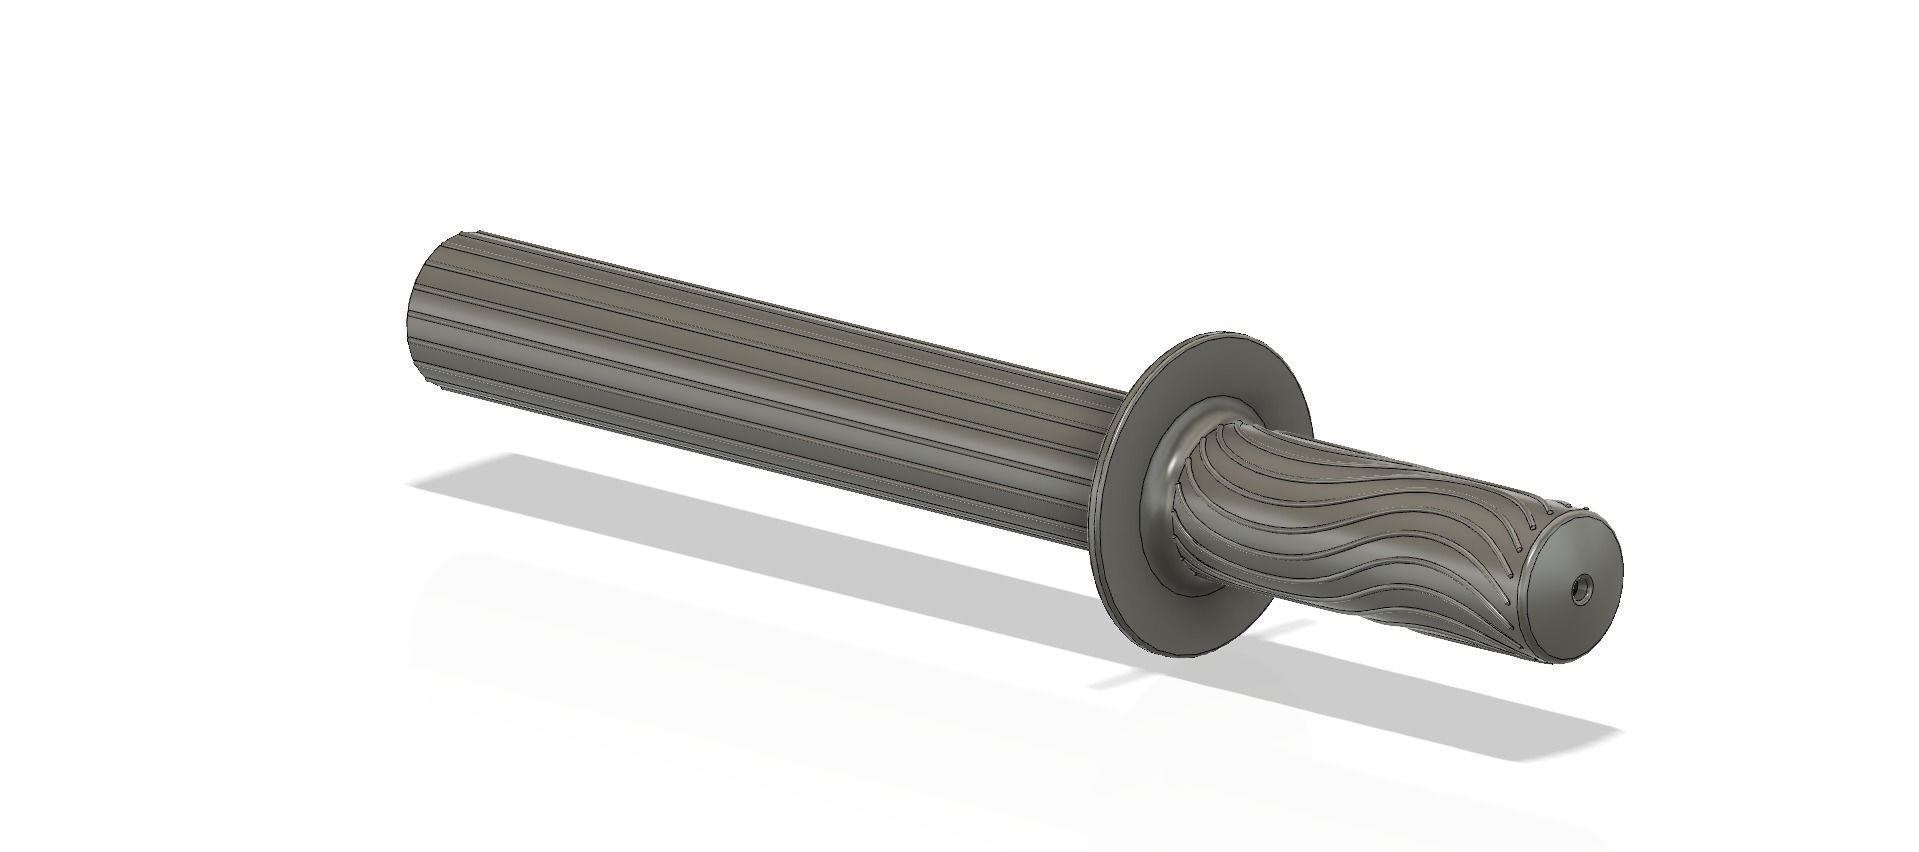 A real paddle handle d32 for a rowing boat for 3d print cnc